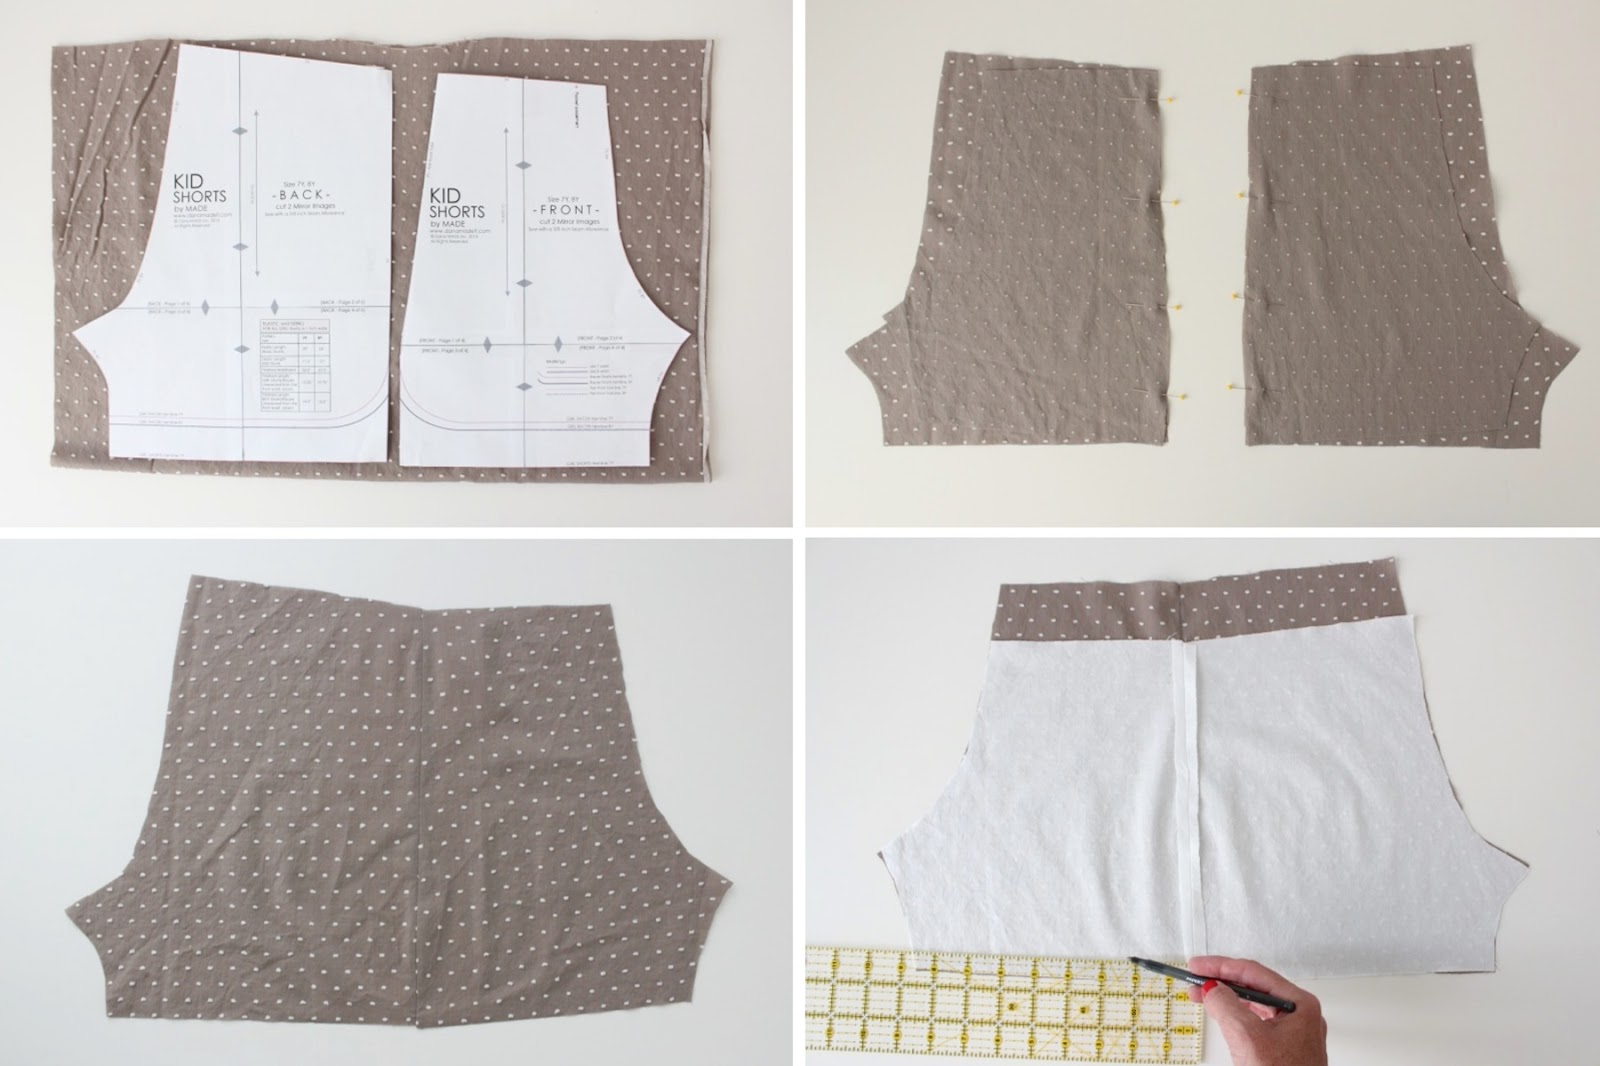 How to sew shorts 67